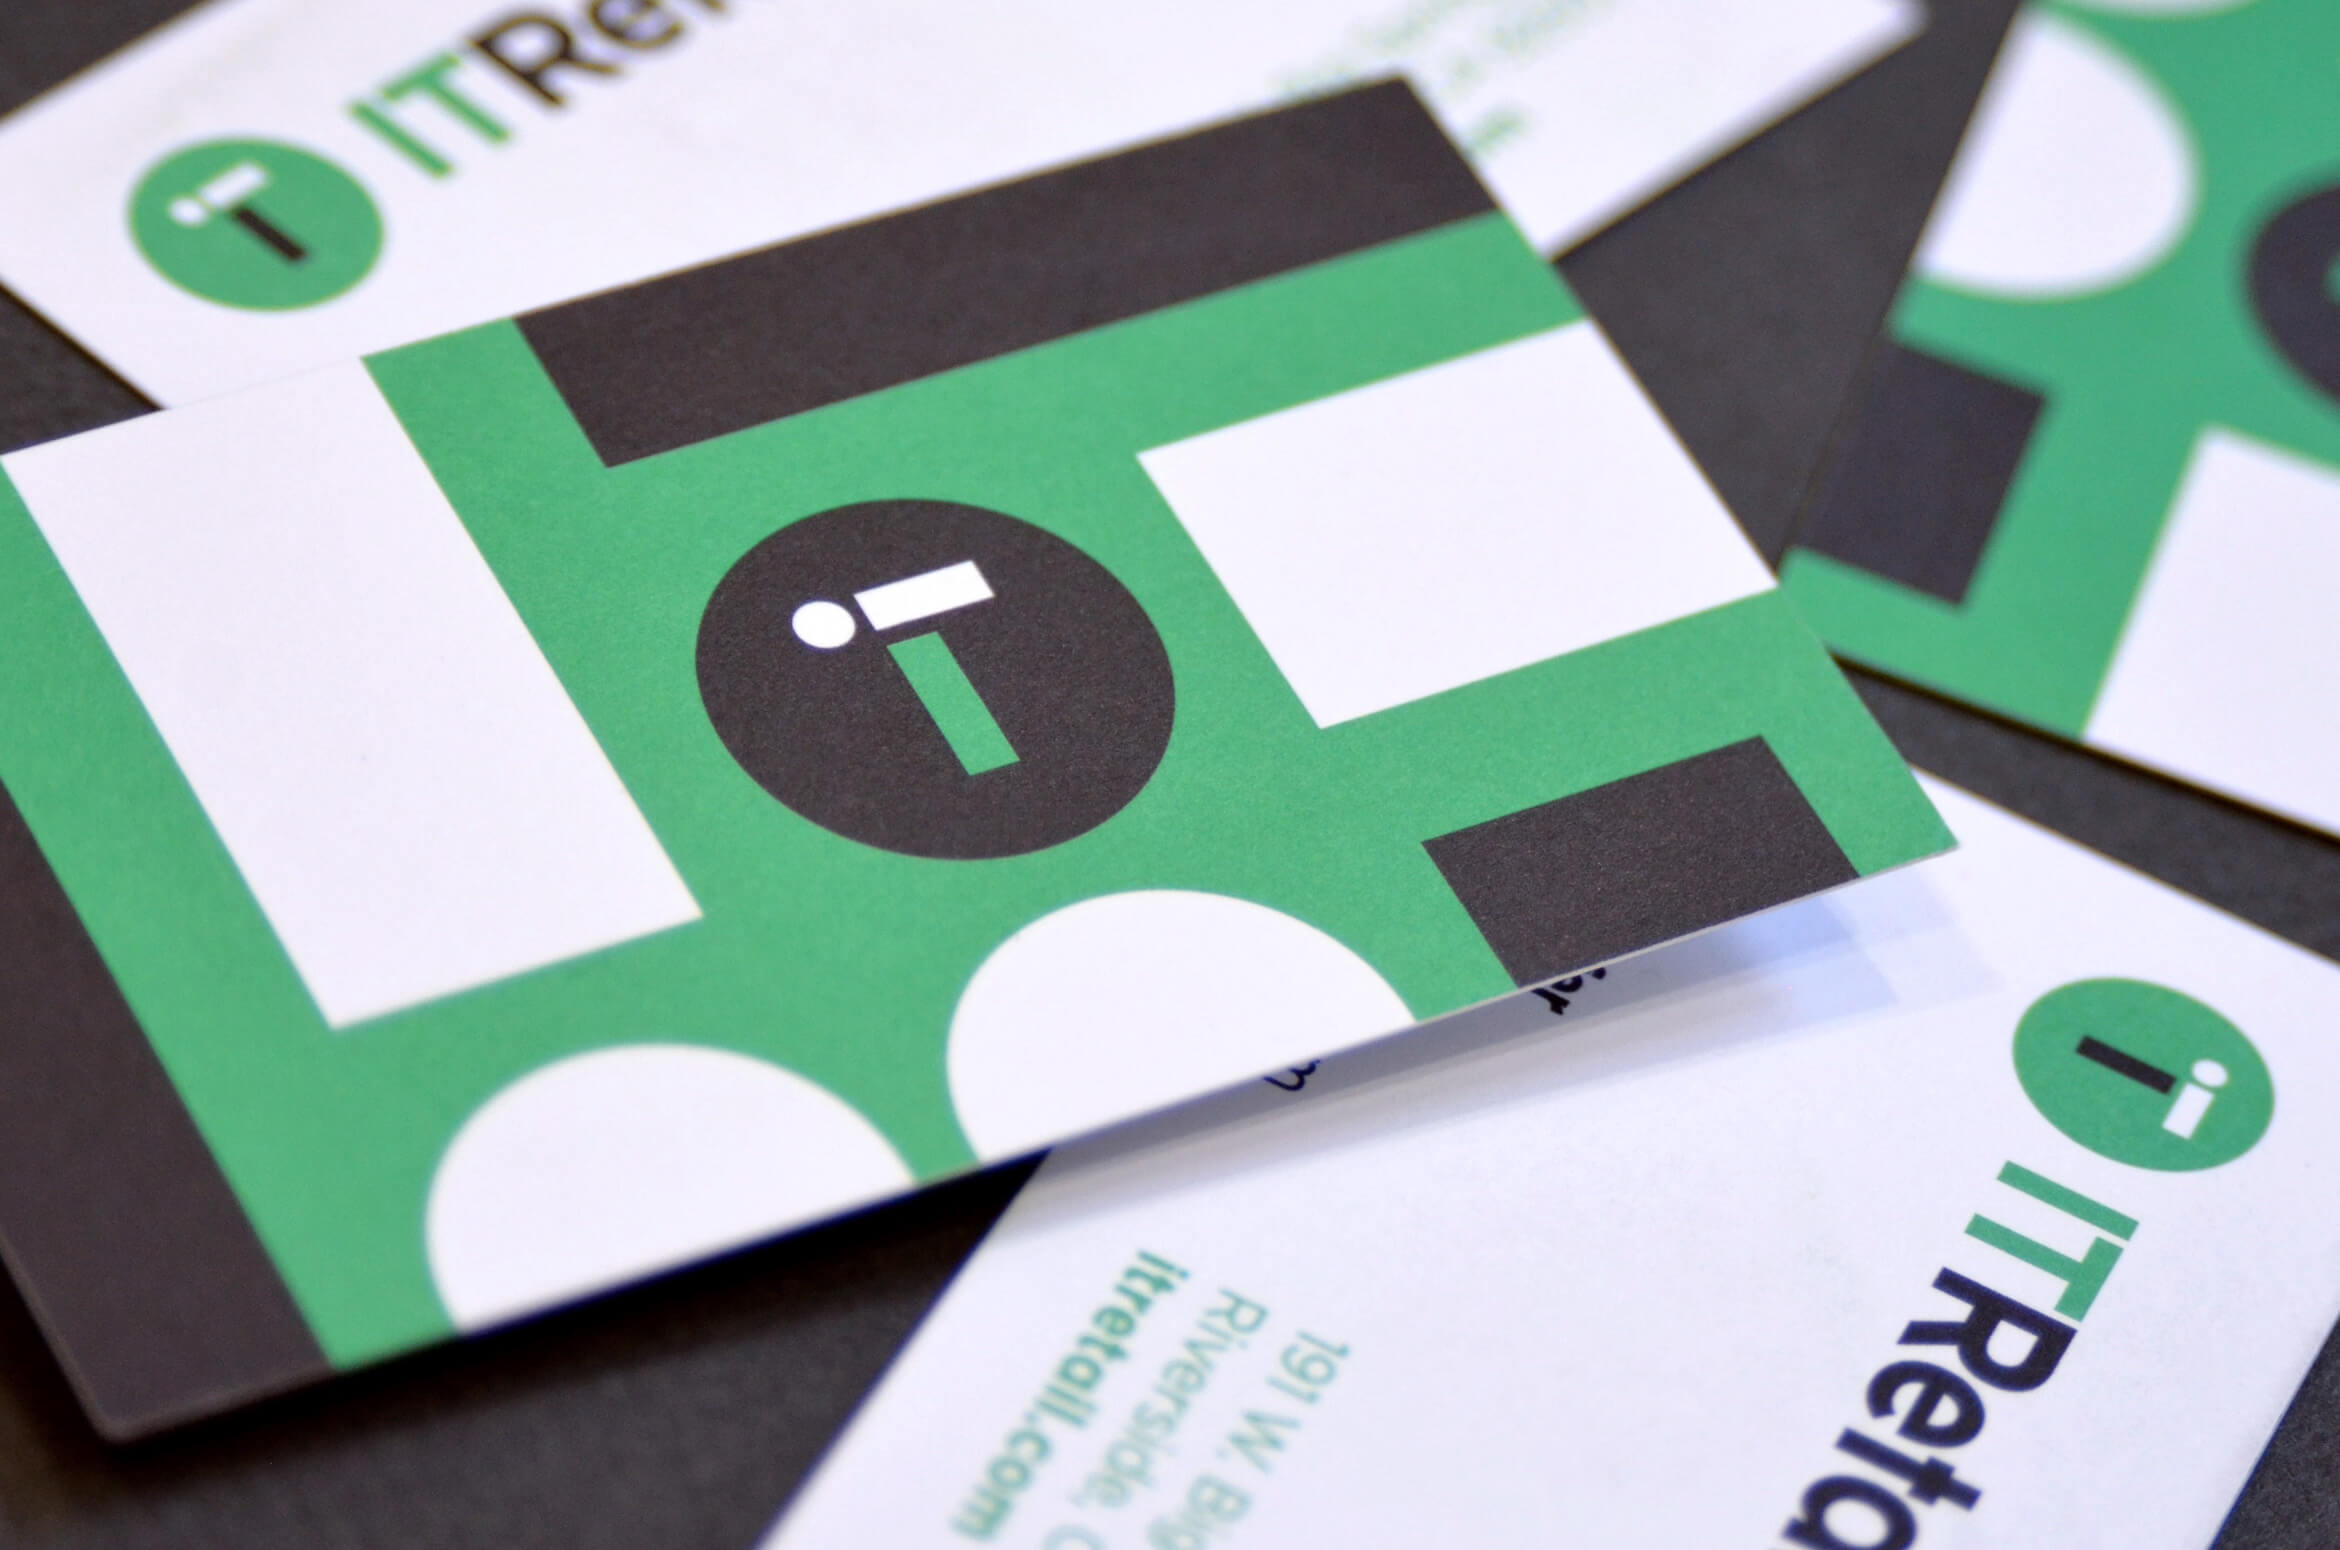 Green and black business cards for IT Retail.